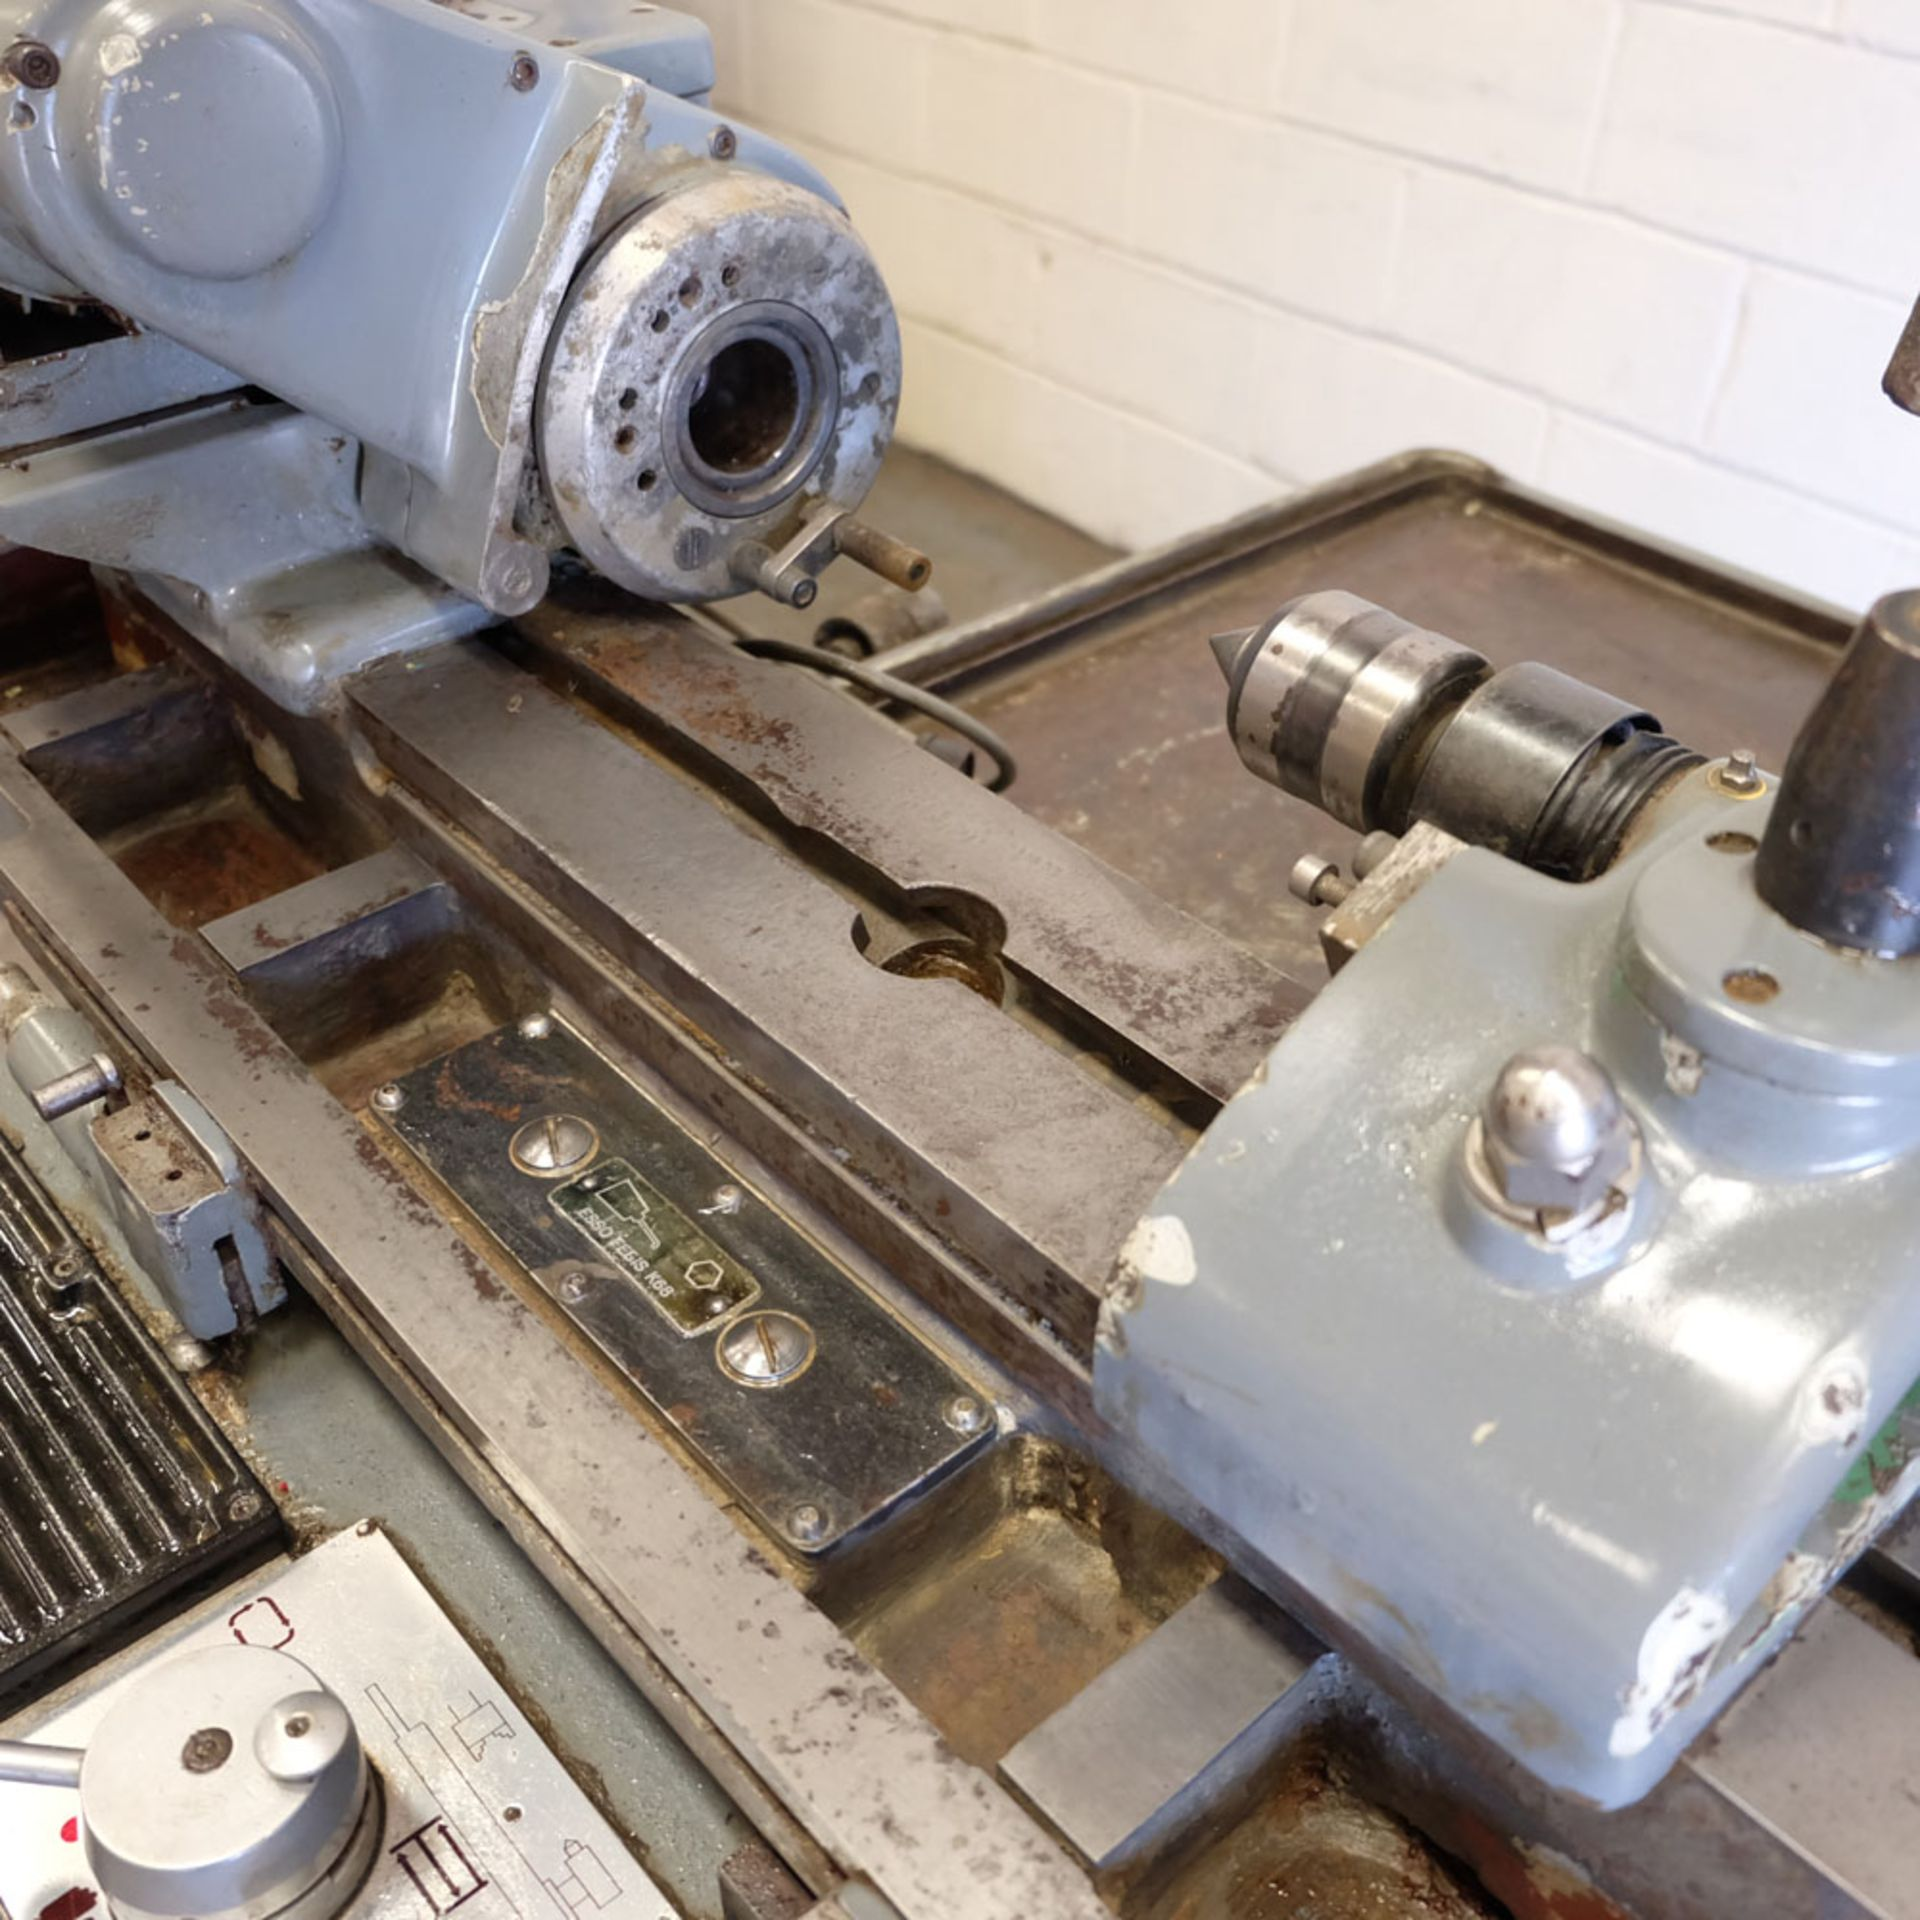 Myford Model MG12-HPT Automatic Cycle Traverse & Plunge Grinder. - Image 5 of 8